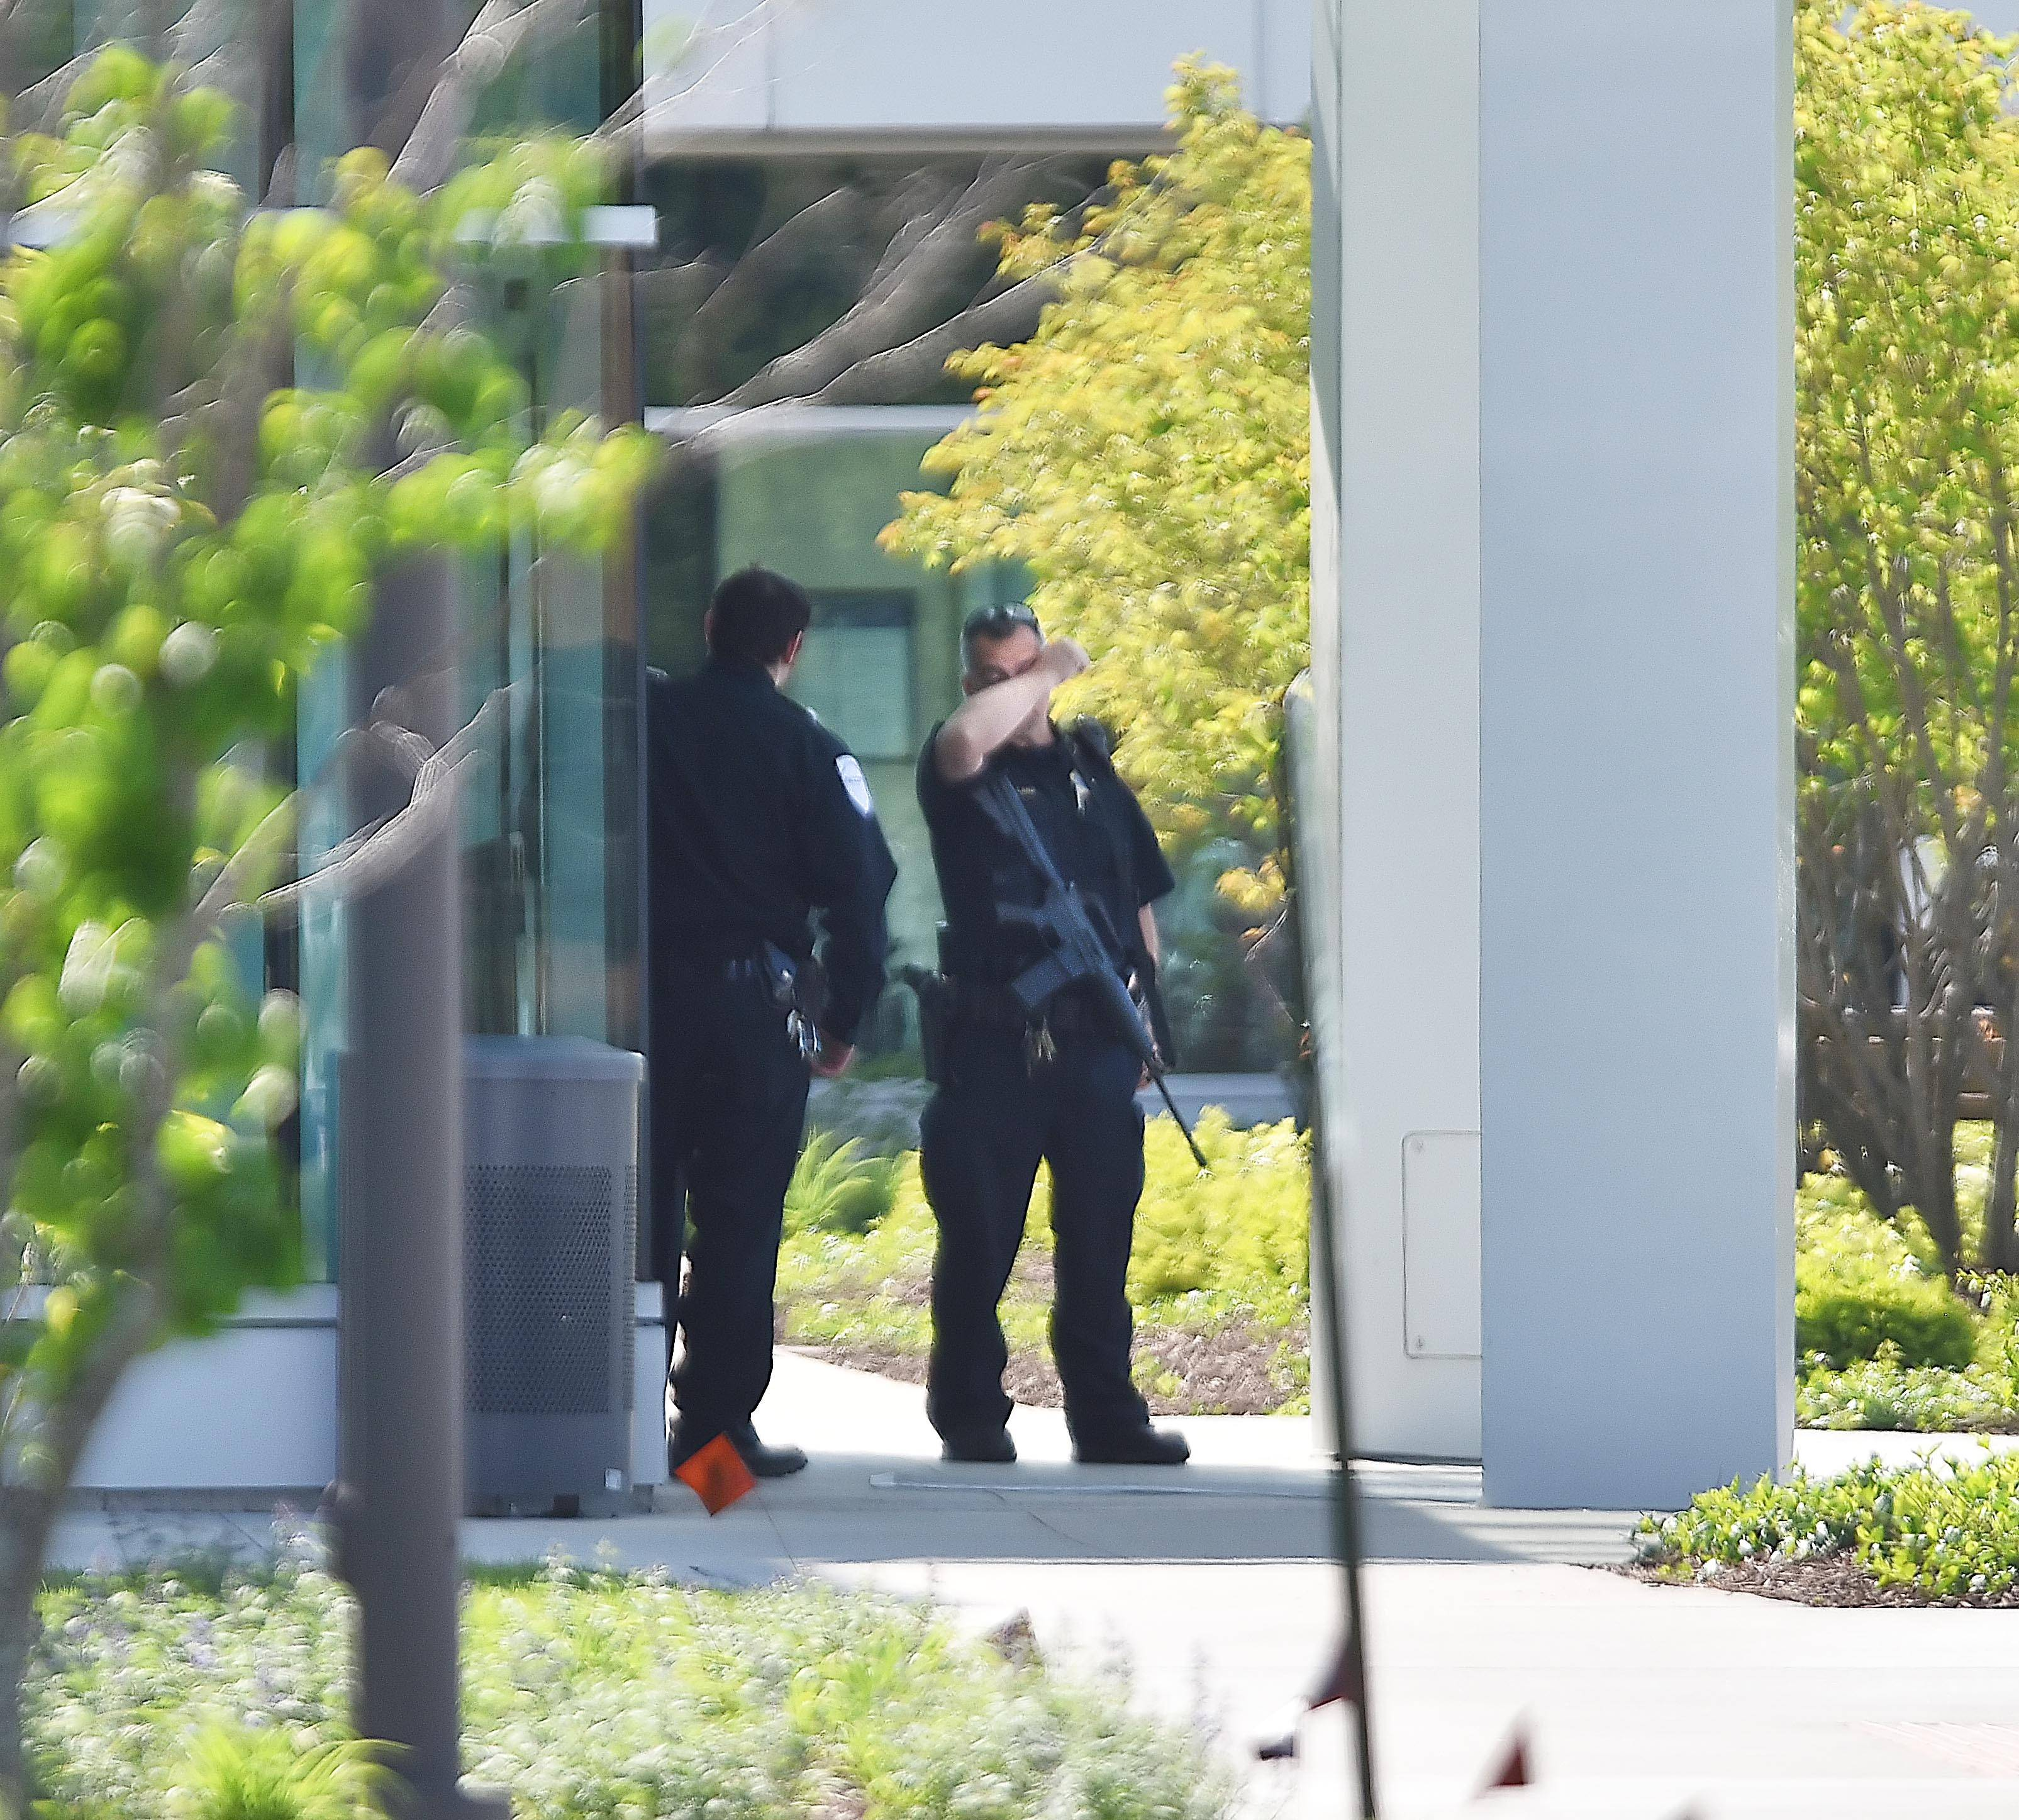 Geneva hostage situation illustrates risks for hospital workers, patients